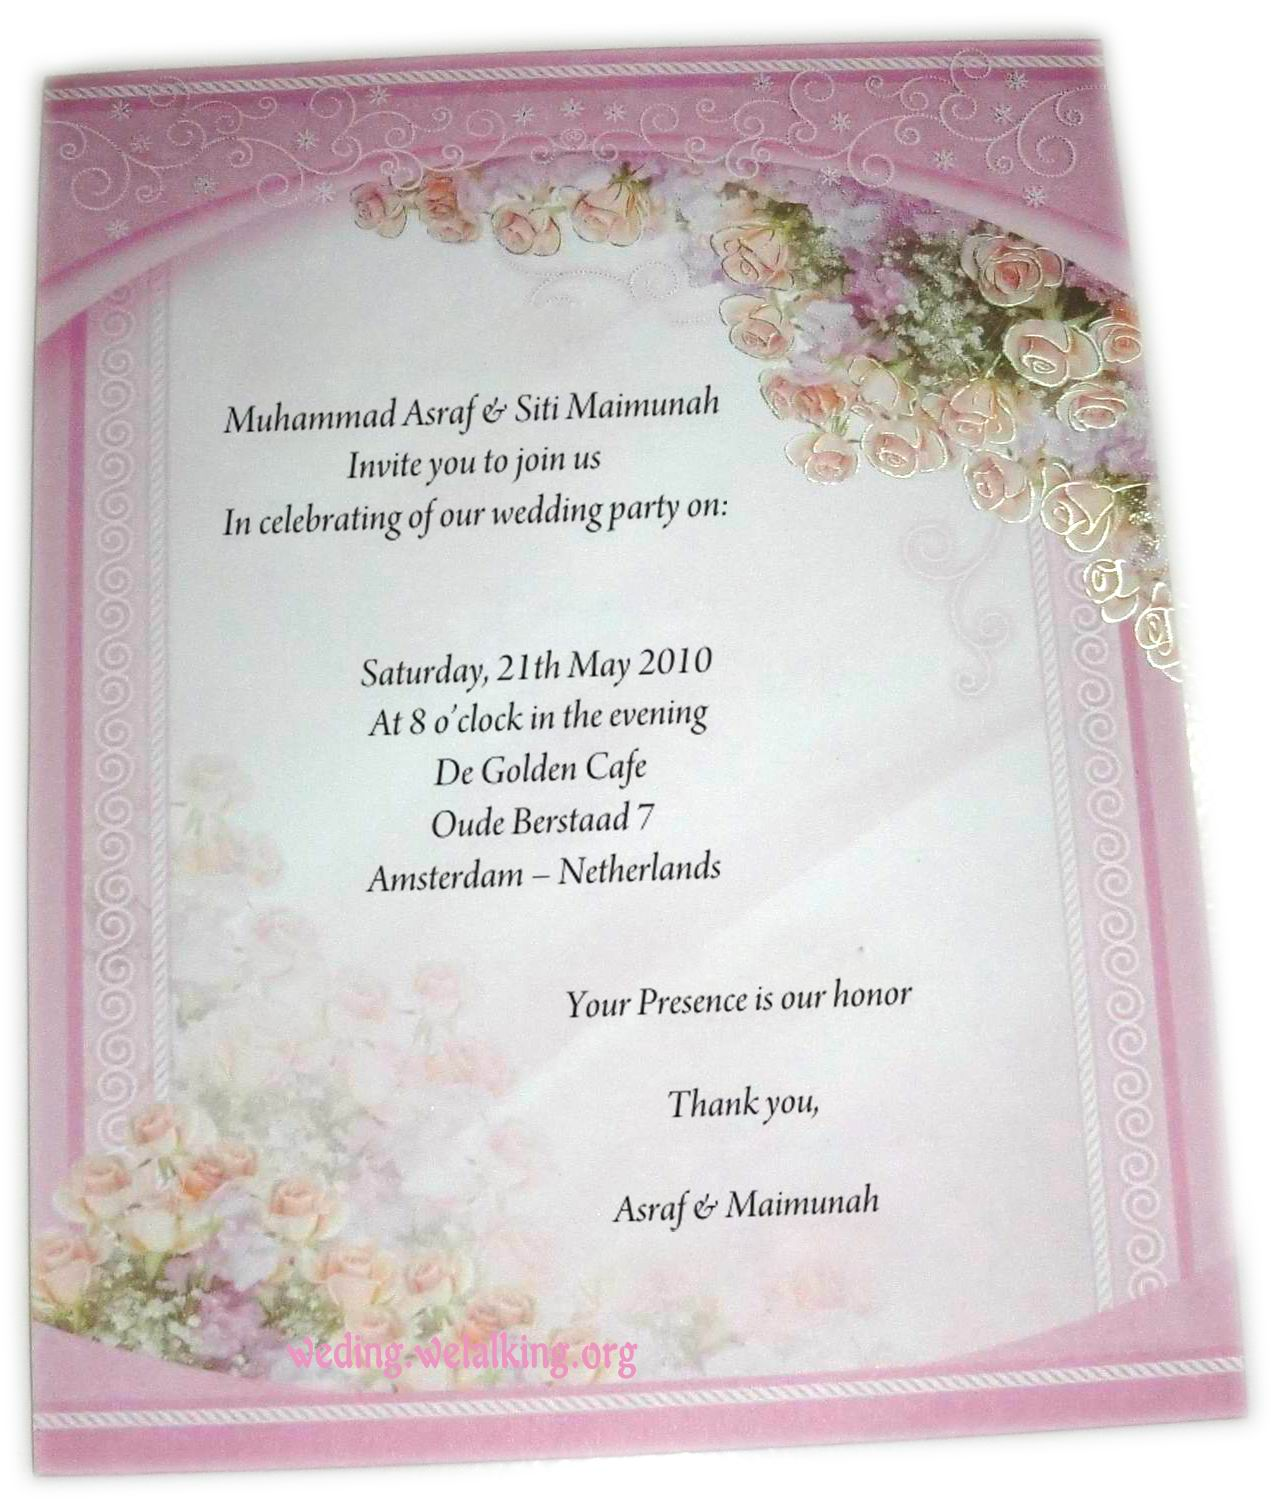 Wedding Invitation In English Wordings: Zahra Alya: Expressions Of Invitation And Followed By The